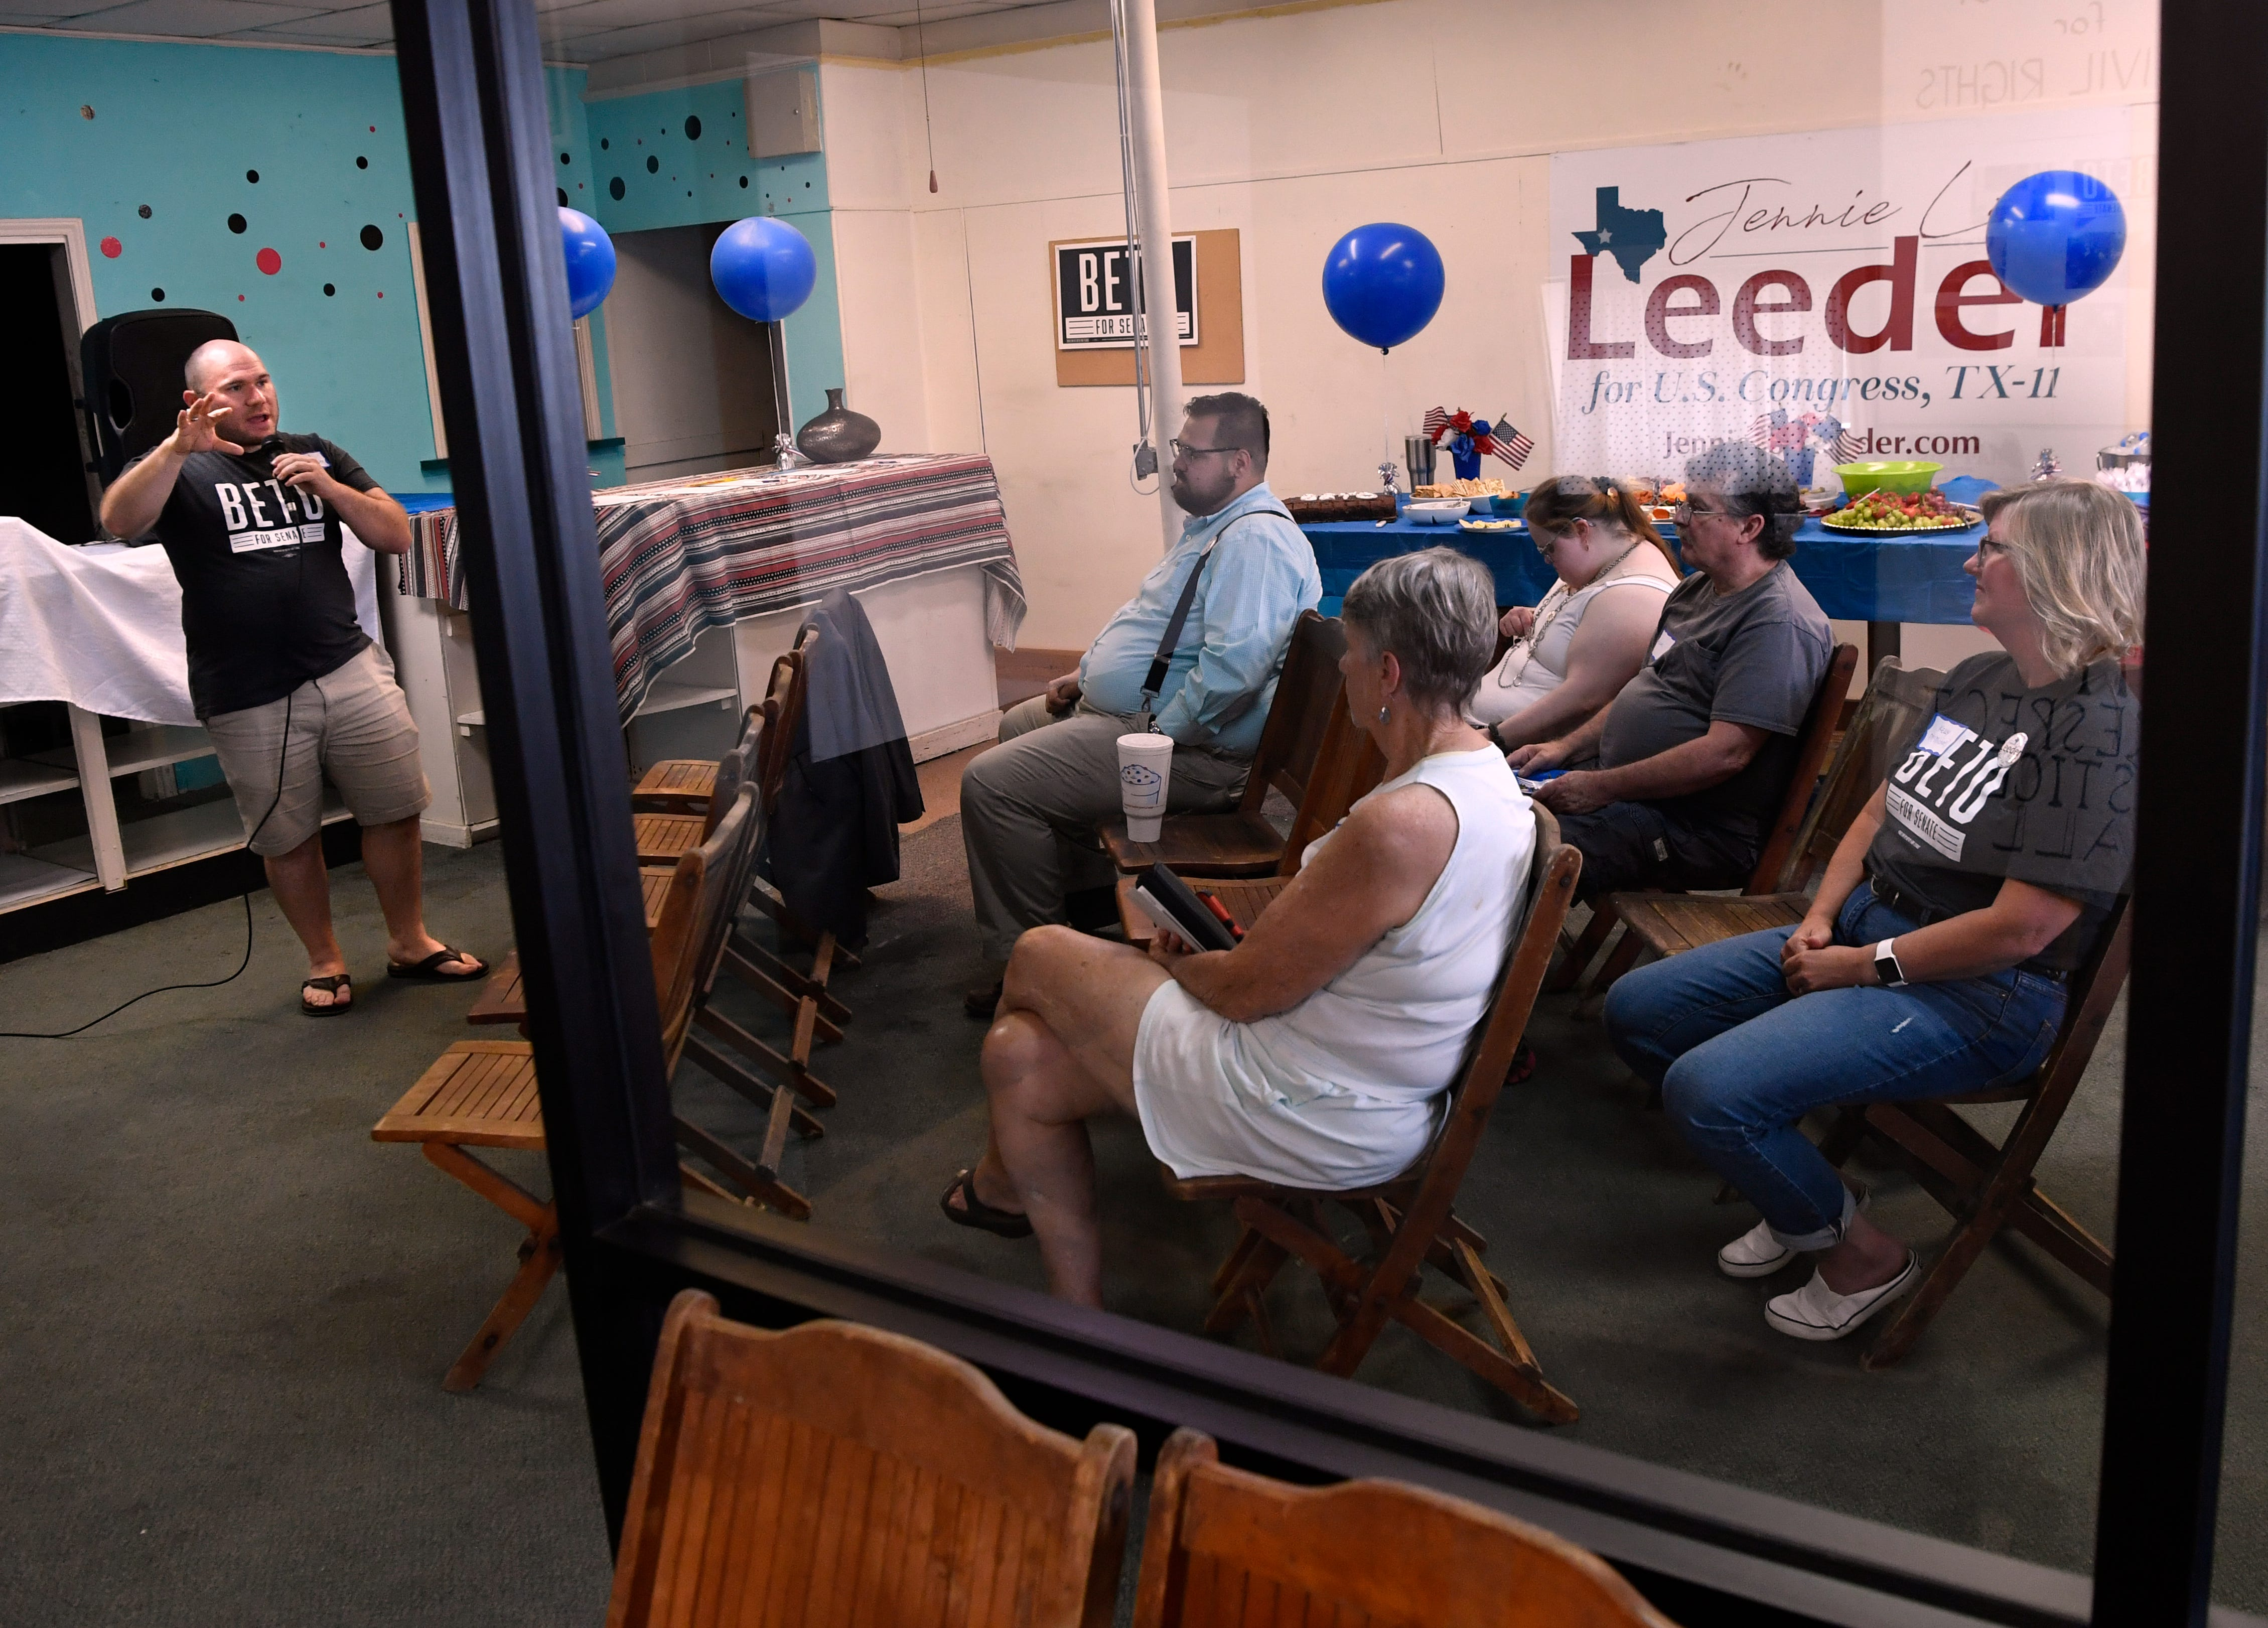 Daniel Dick, representing the Beto O'Rourke campaign, speaks during the opening of the Eastland County Democrats office Sept. 6. The office is located at 305 E. Main St.